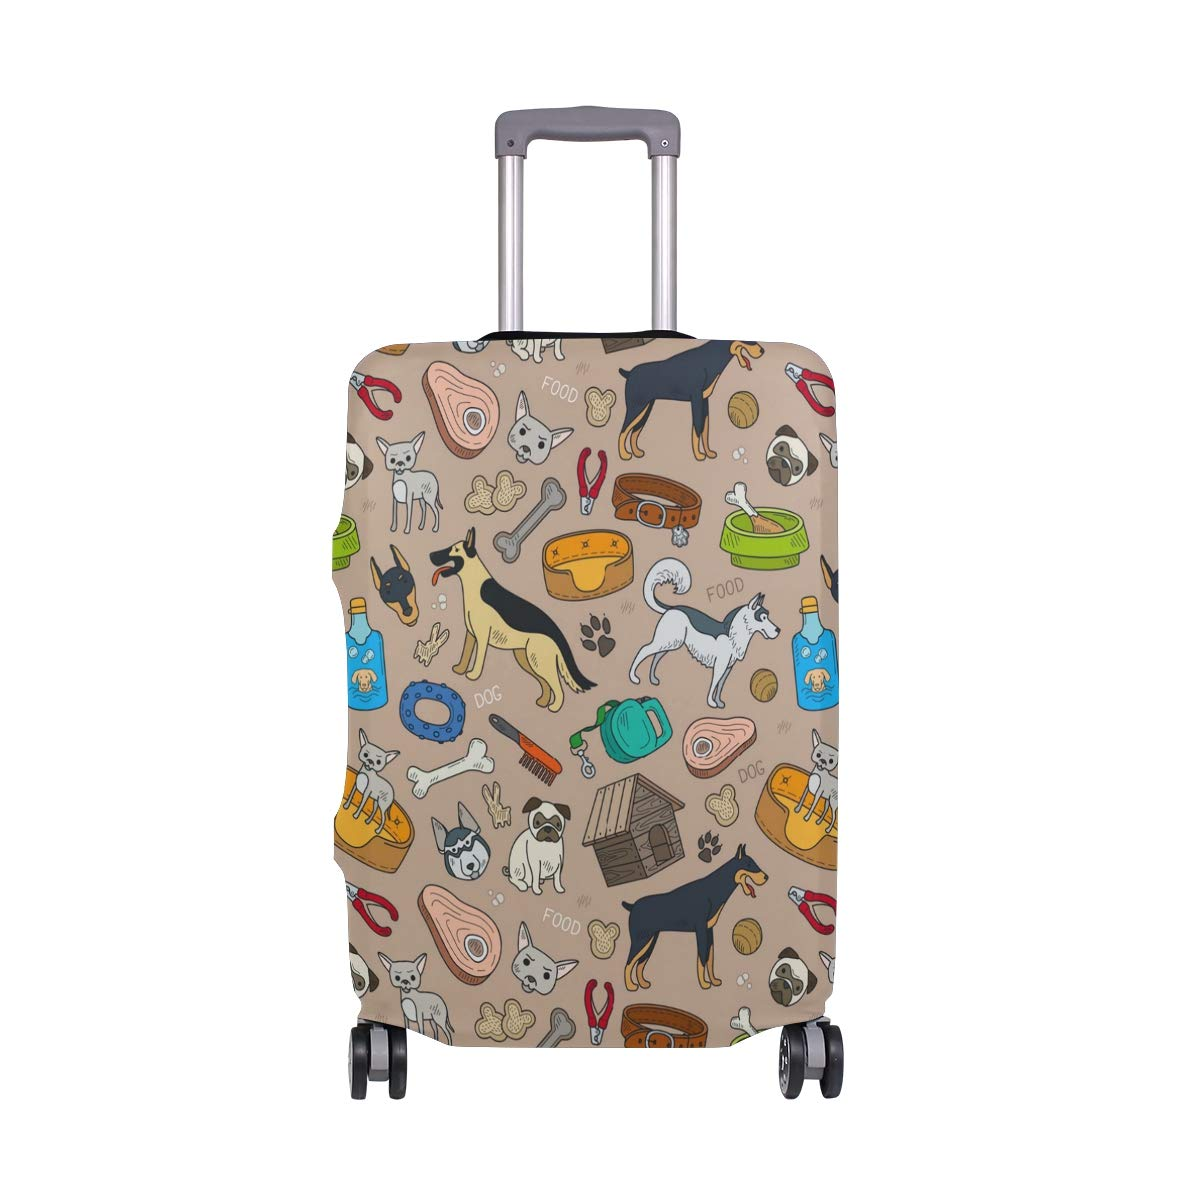 Dog Beds Accessories Traveler Lightweight Rotating Luggage Protector Case Can Carry With You Can Expand Travel Bag Trolley Rolling Luggage Protector Case